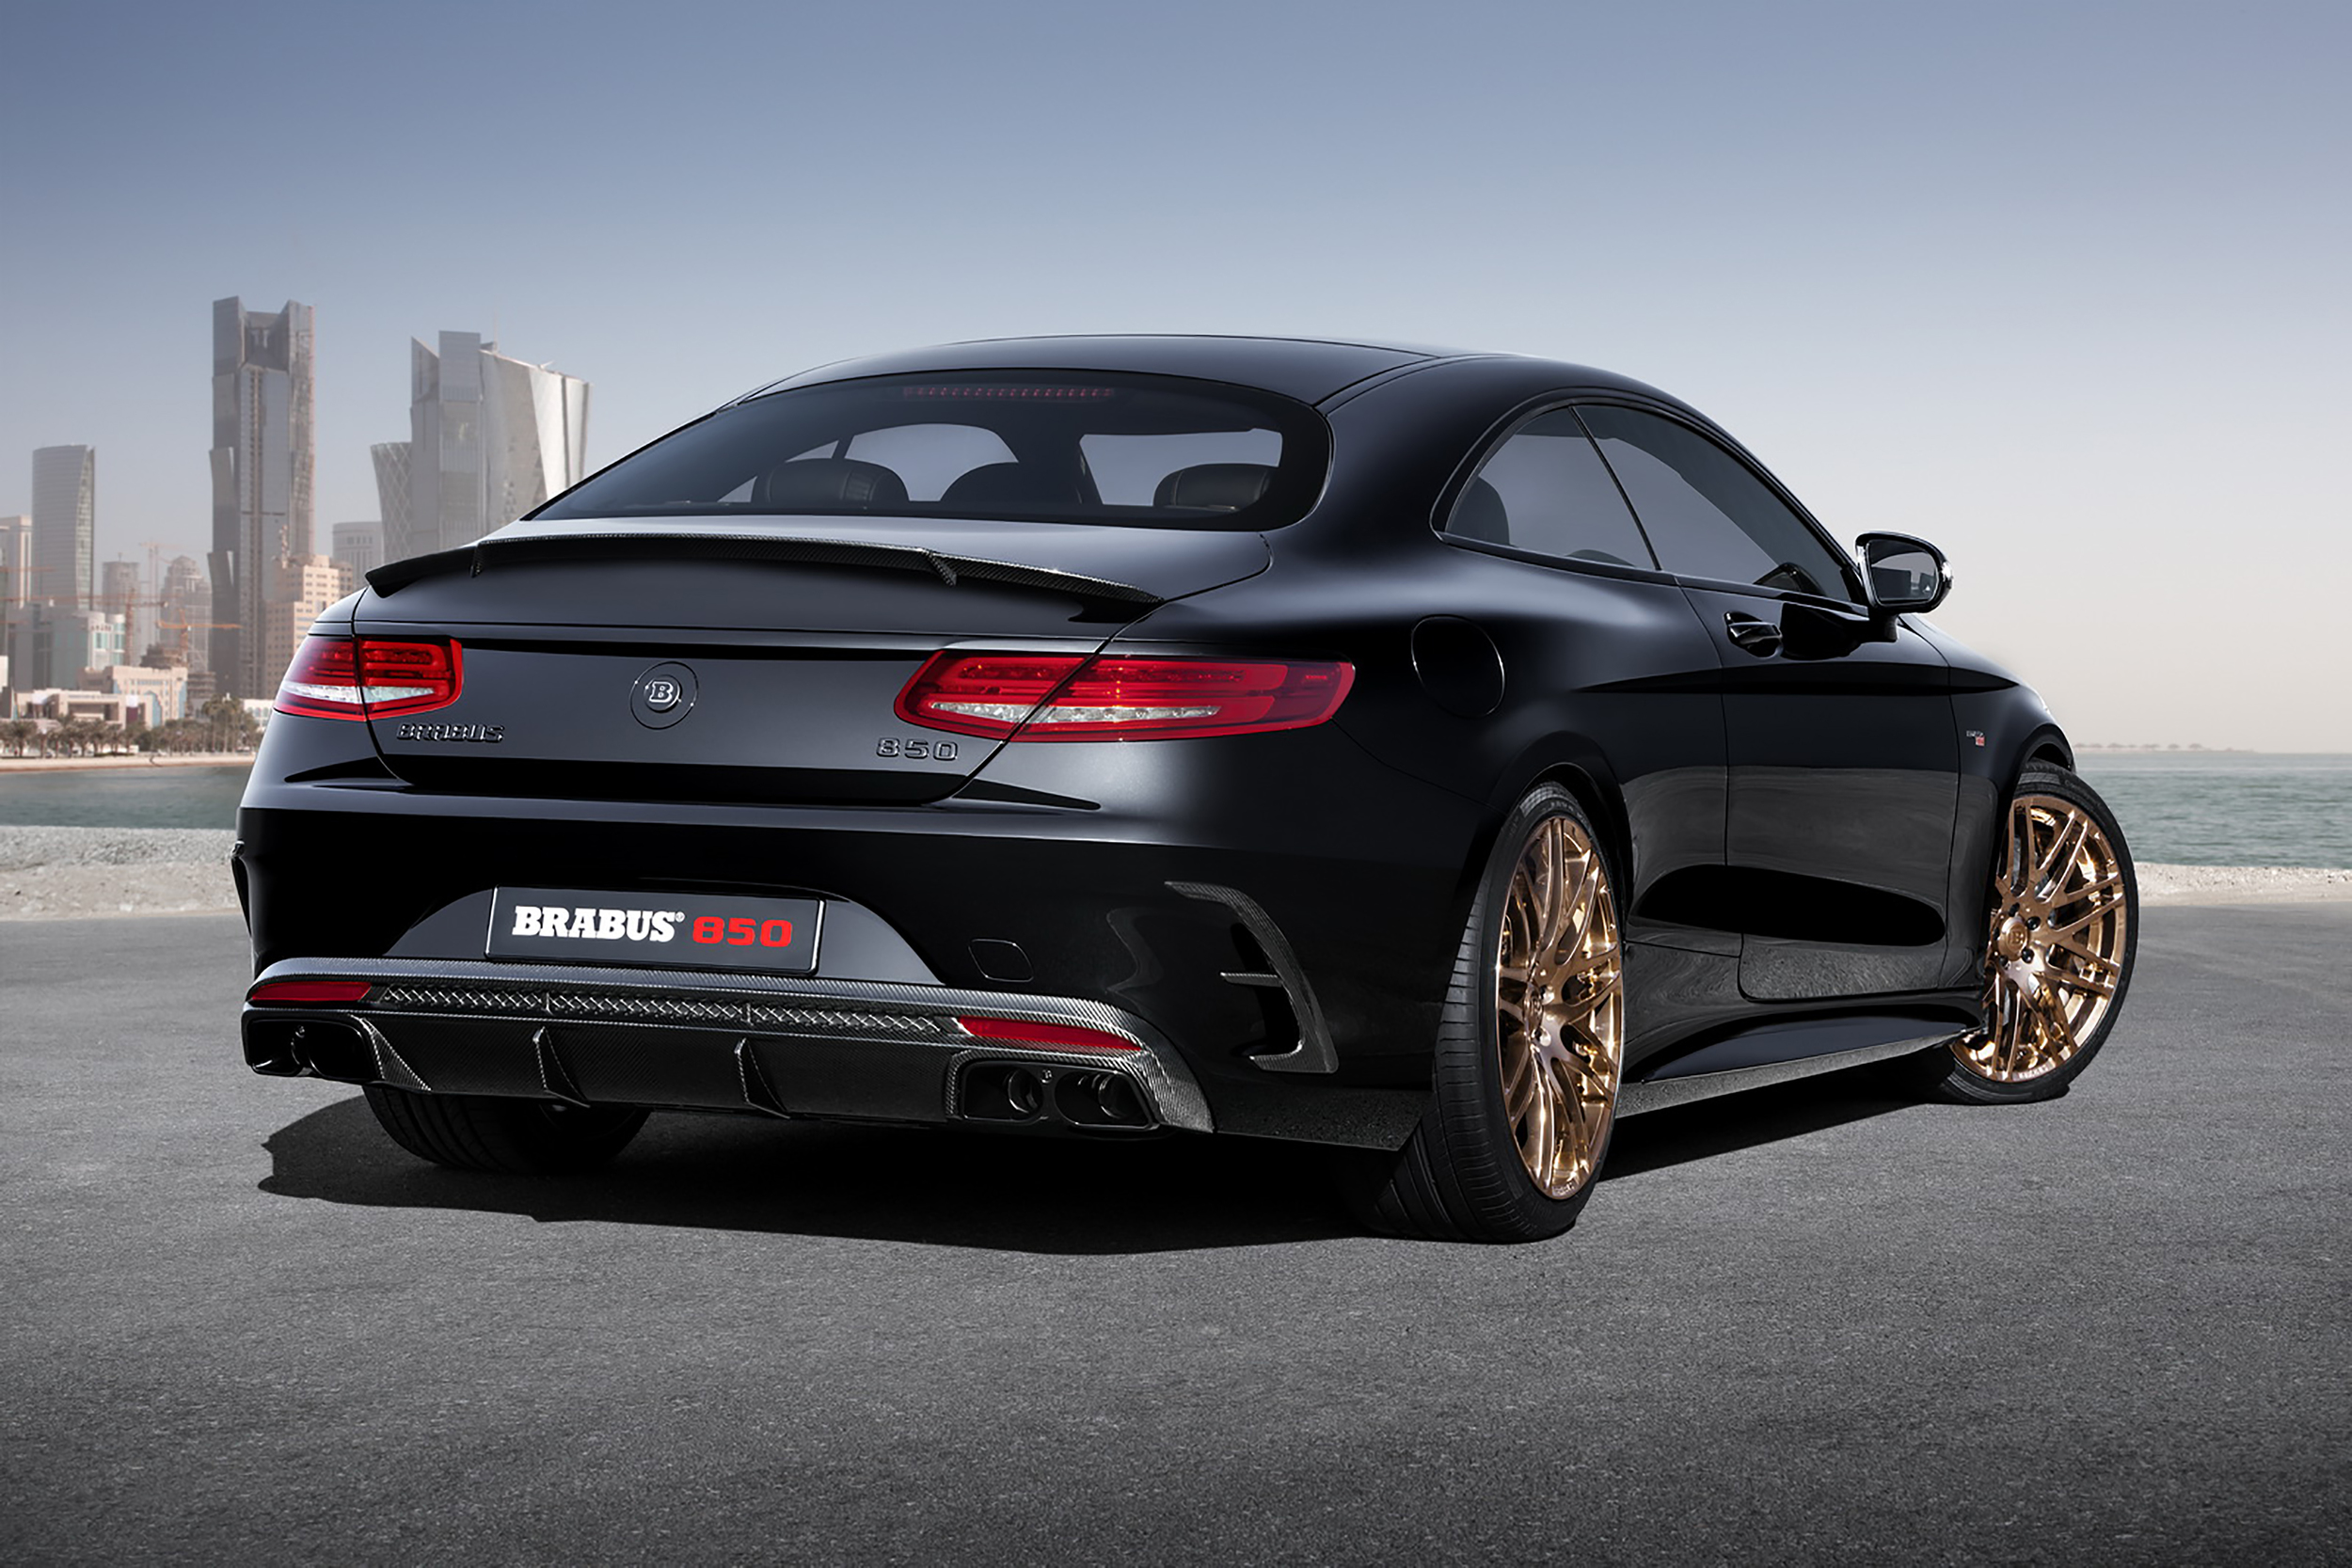 ' ' from the web at 'http://www.blogcdn.com/slideshows/images/slides/335/948/5/S3359485/slug/l/brabus-s-class-coupe-16-1.jpg'